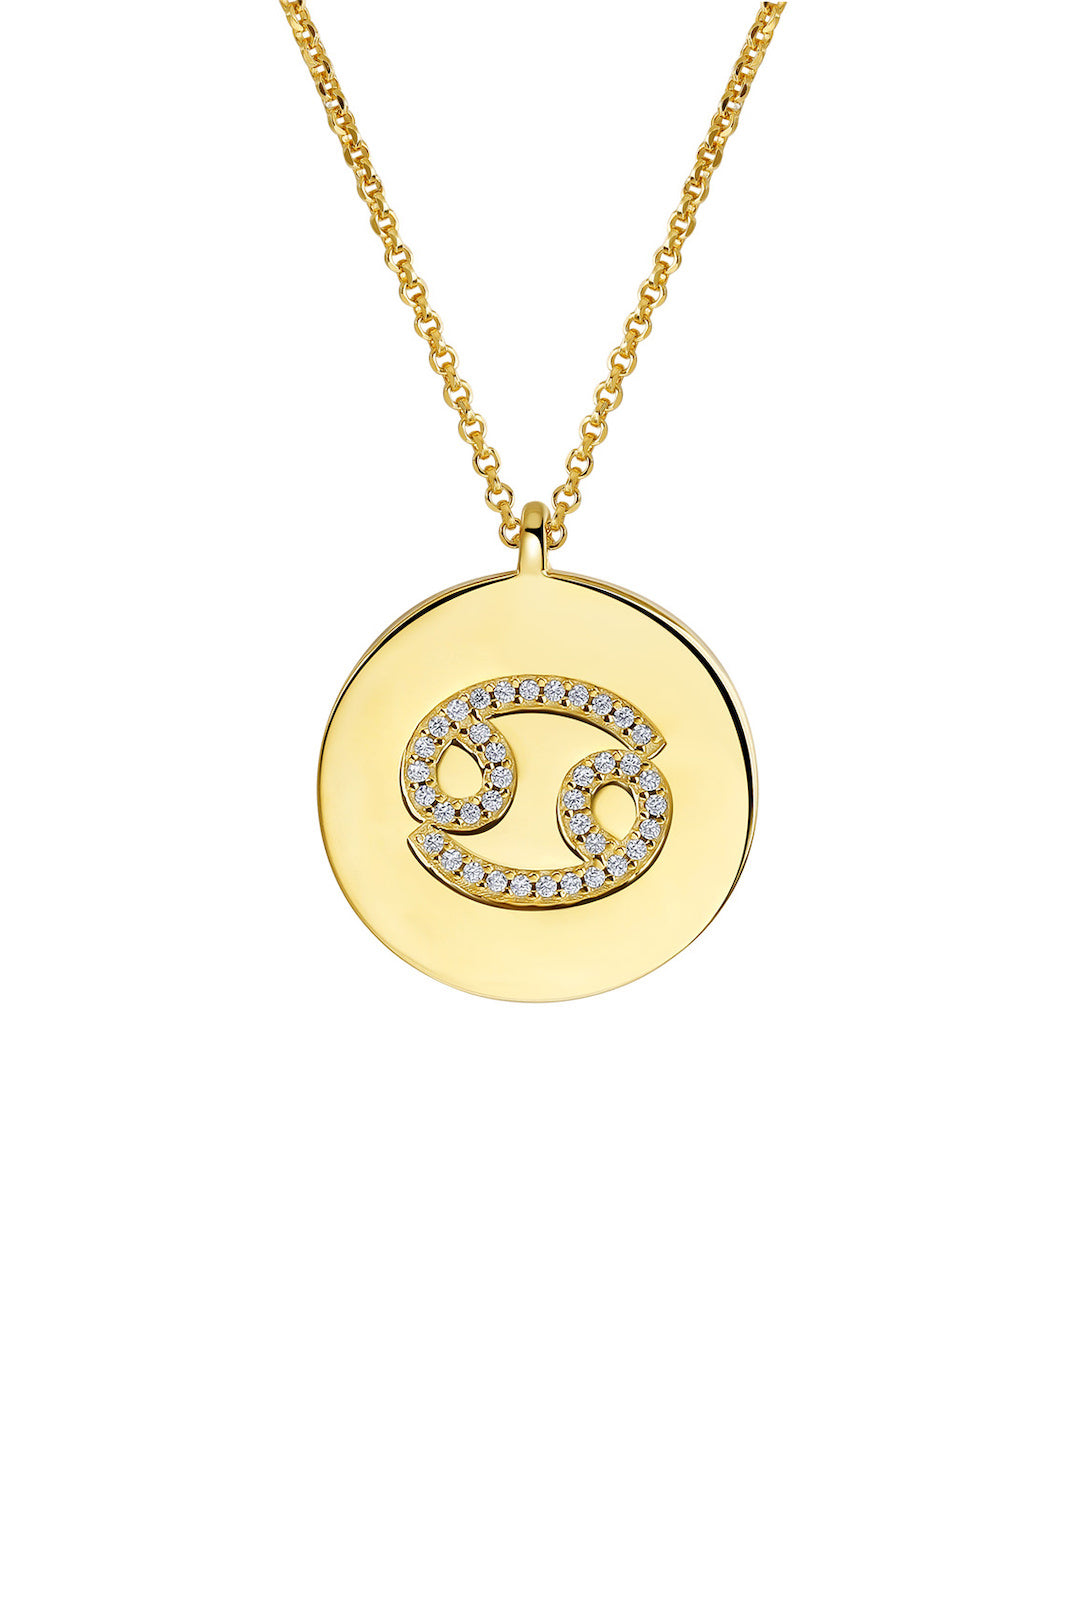 Gold Plated Silver Zodiac Necklace - Cancer Side View